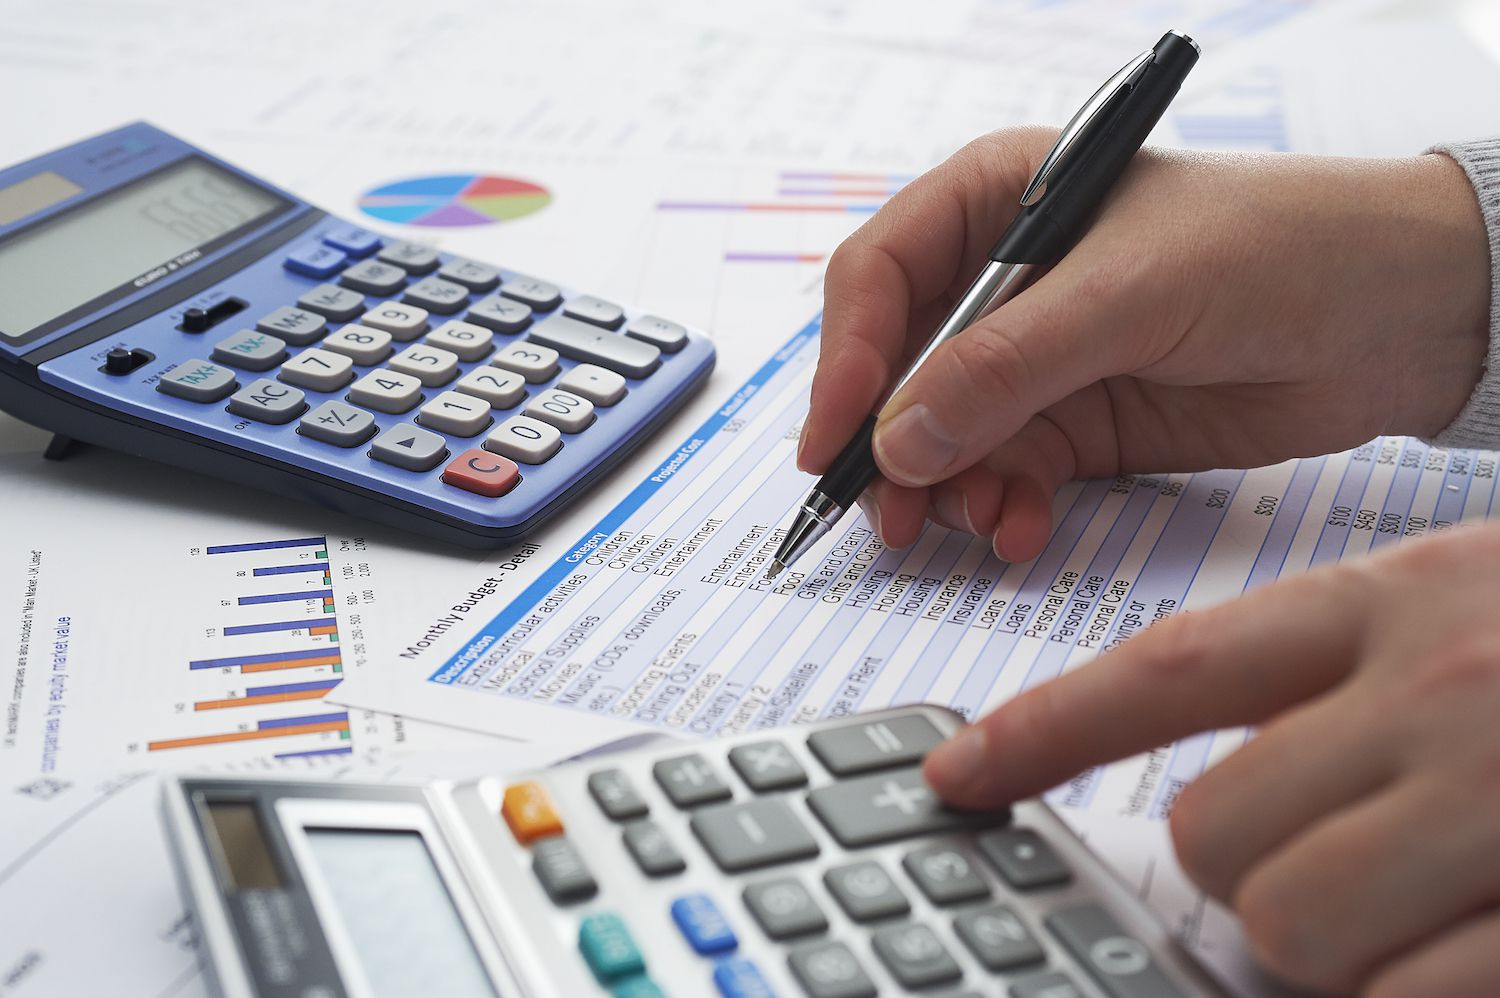 IFRS and FASB - What are Financial Reporting Standards?